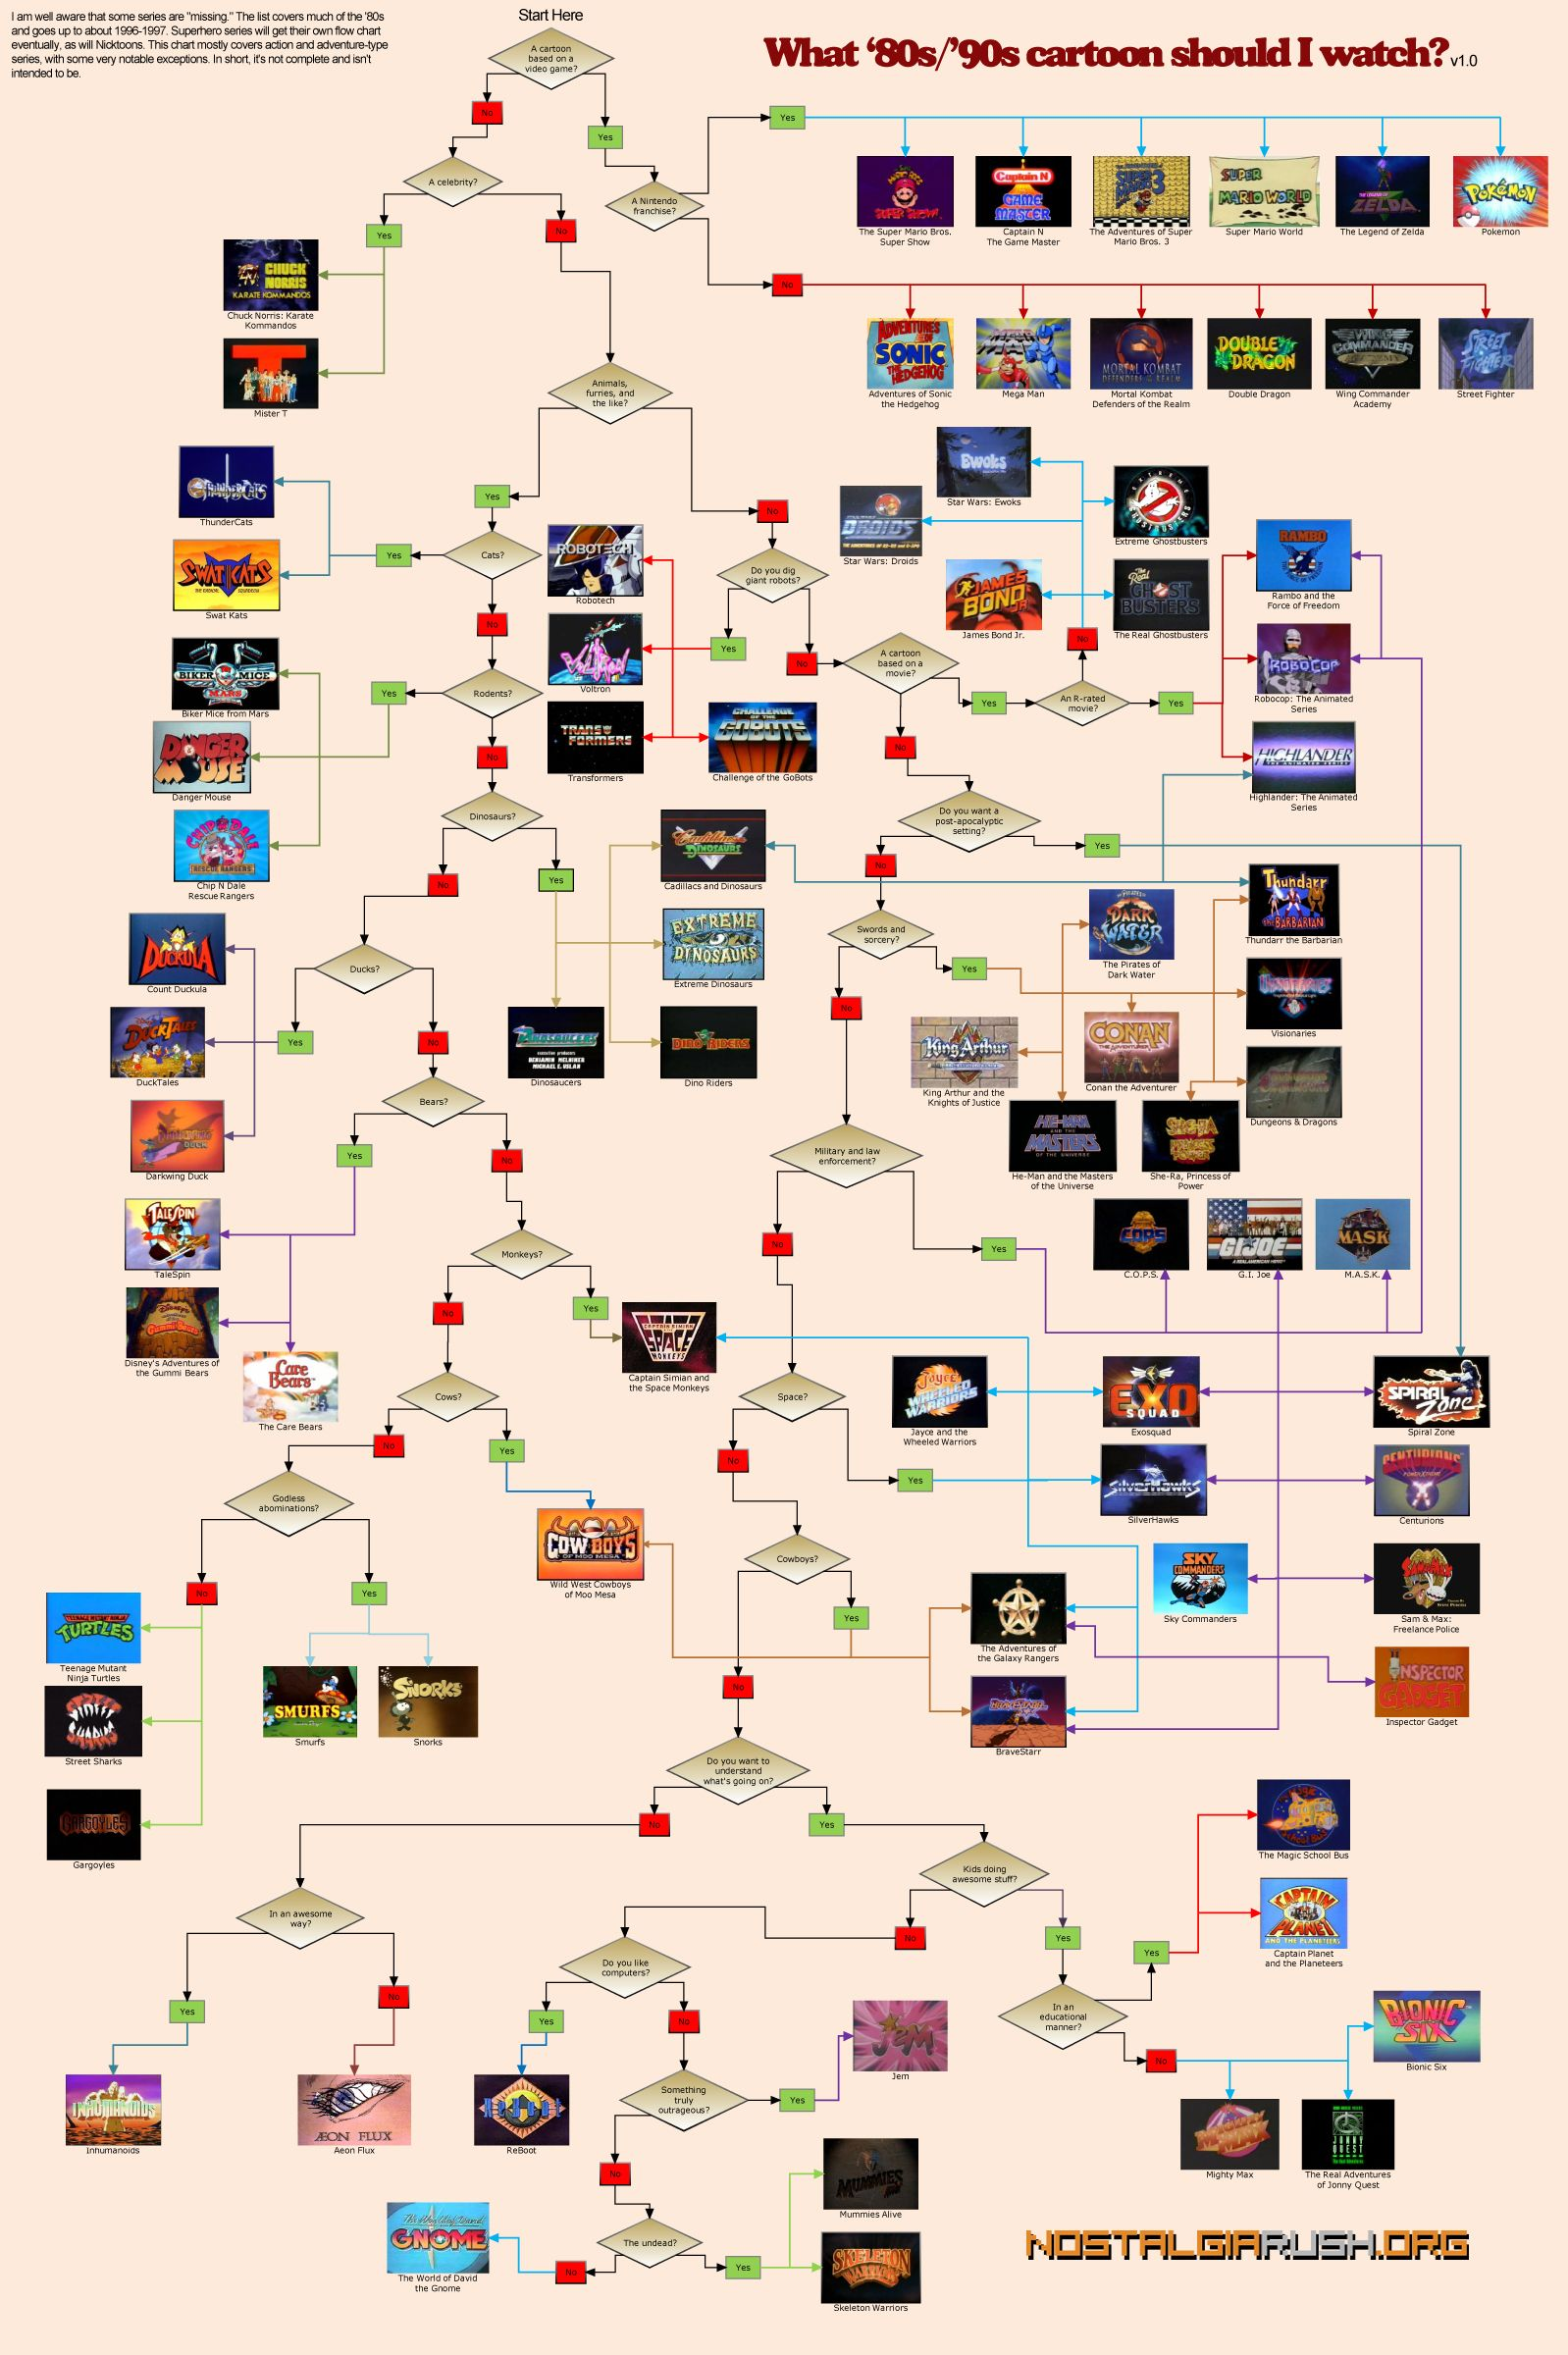 80s 90s cartoons #Flowchart allows you to choose one you ...